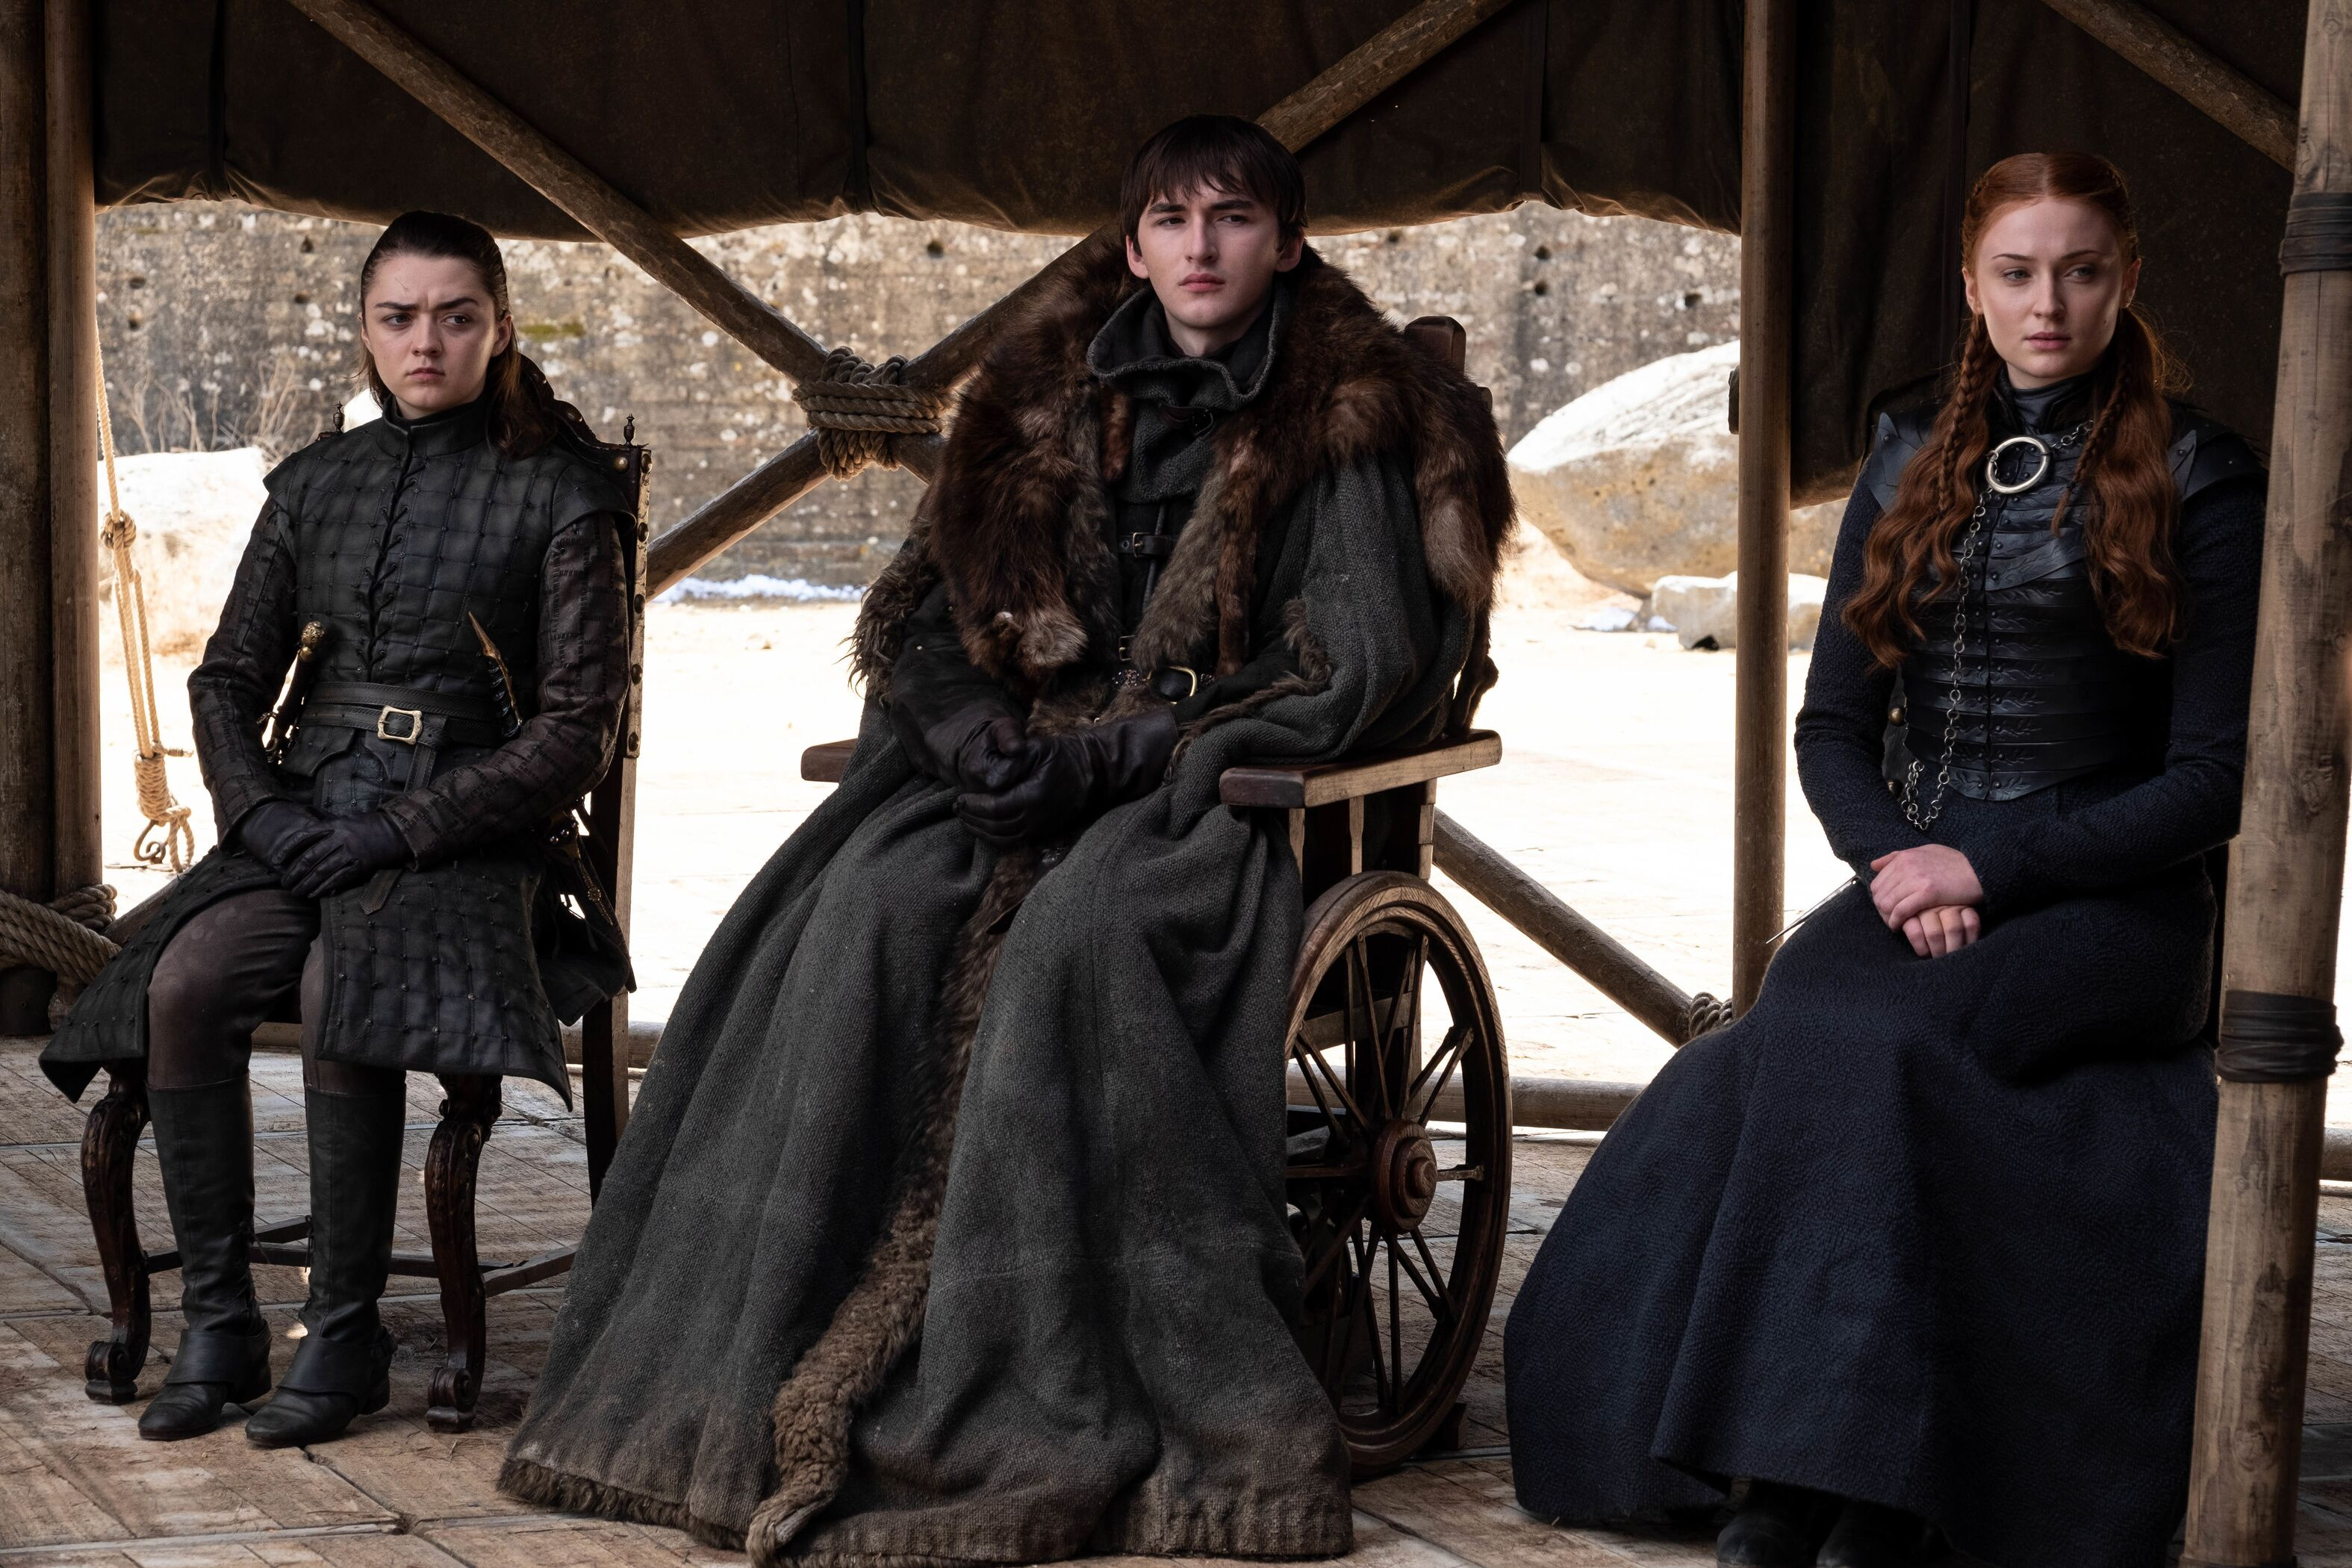 What made Game of Thrones popular? Ask the cast